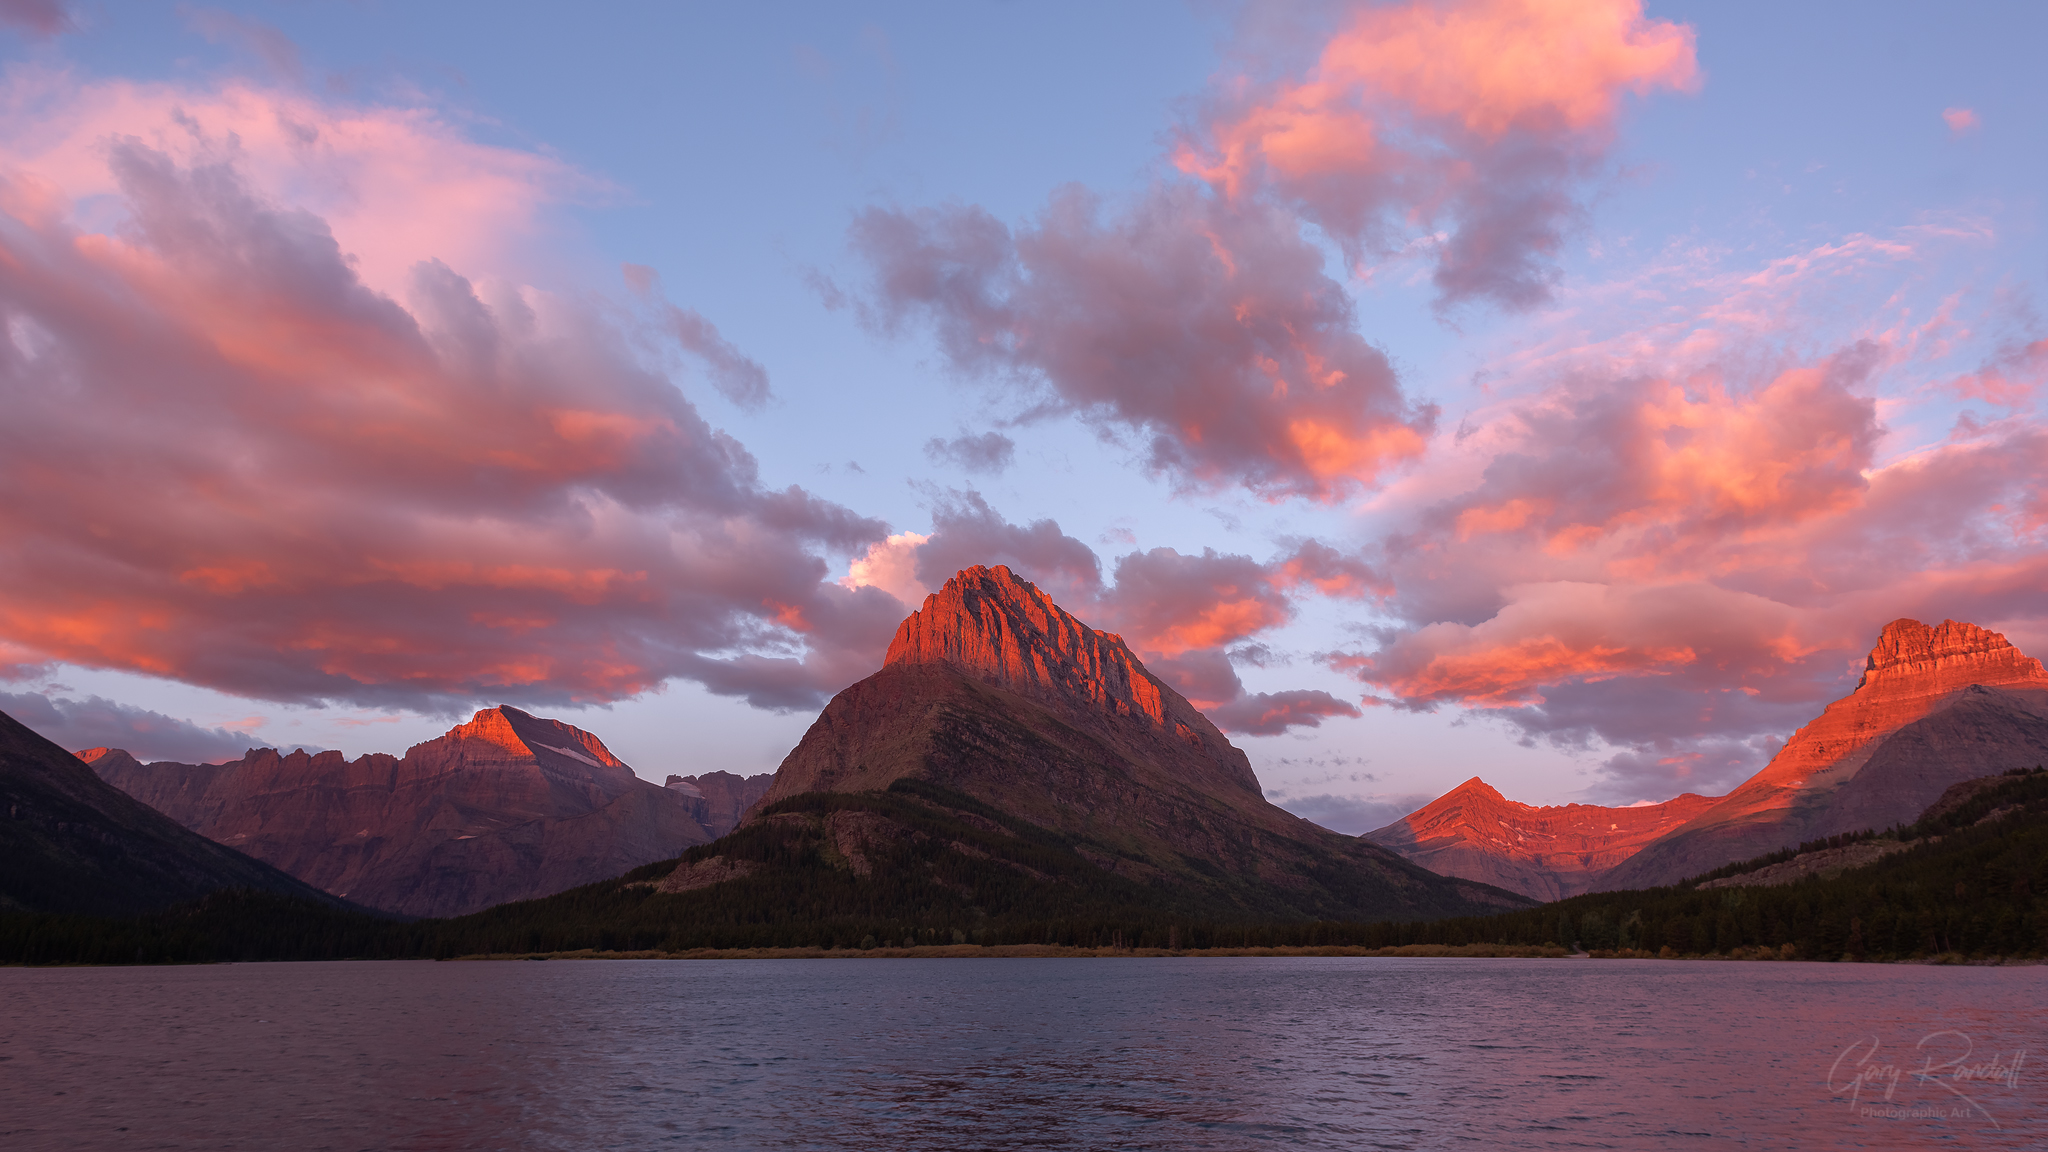 Grinnell Point at Swiftcurrent Lake